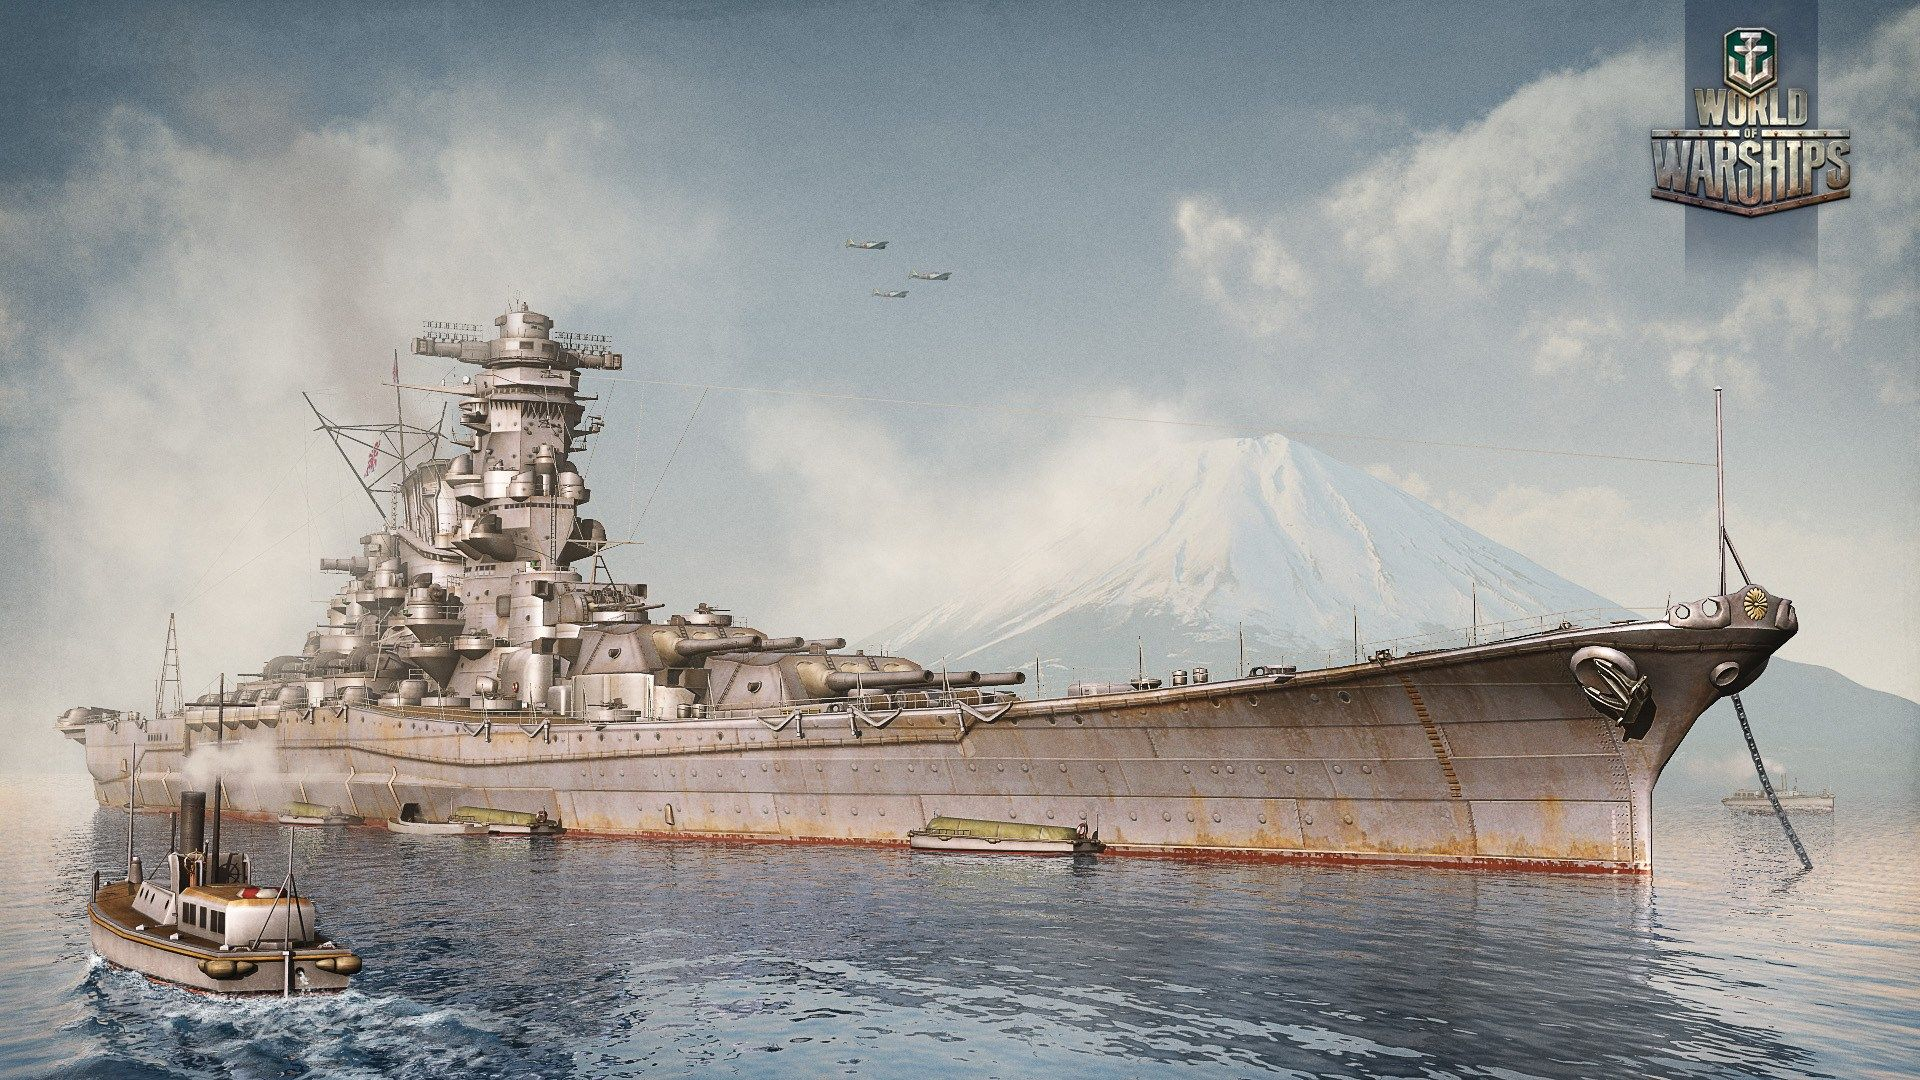 1920x1080 World Of Warships Game Wallpaper Yamato Battleship